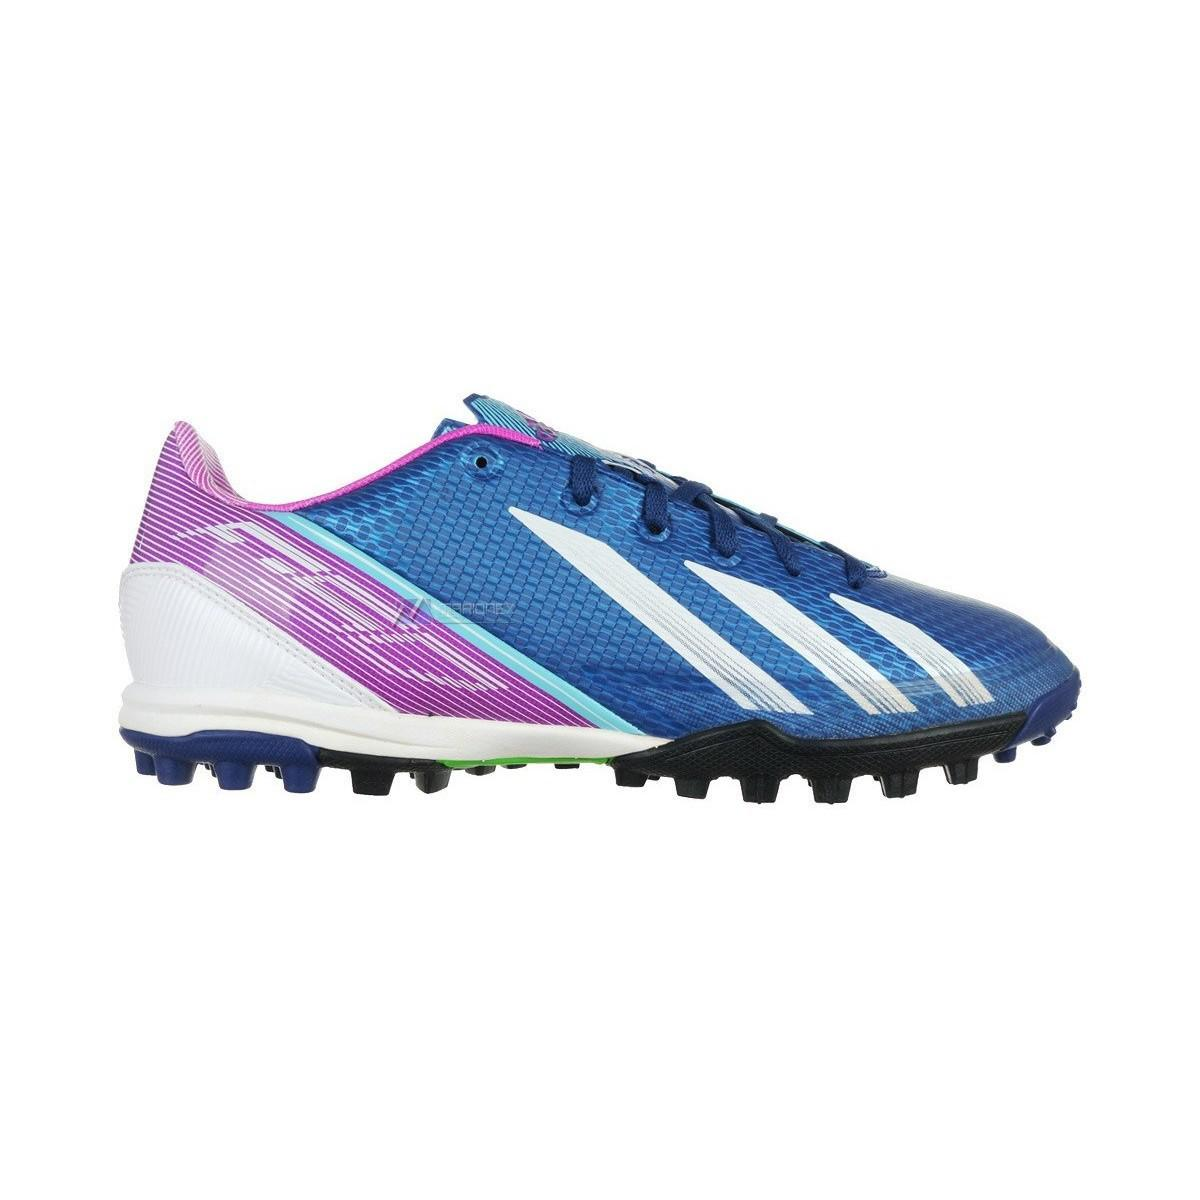 ... promo code for adidas f30 trx tf f50 mens football boots in blue in  blue for 3102211815511